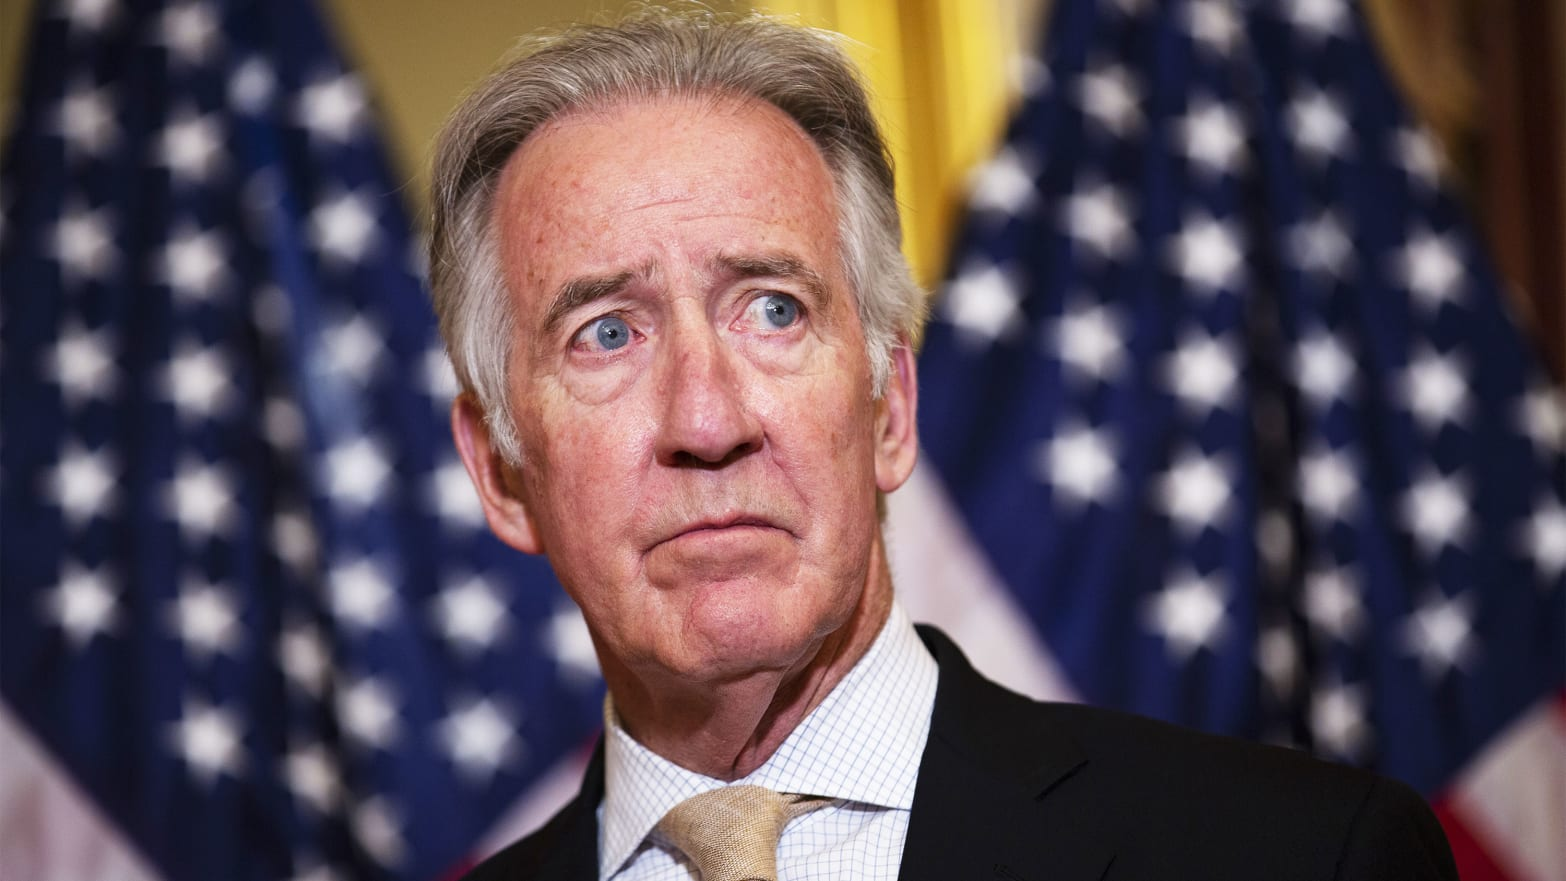 Richard Neal Slow-Walked Getting Trump's Taxes—Now He's Getting Primaried